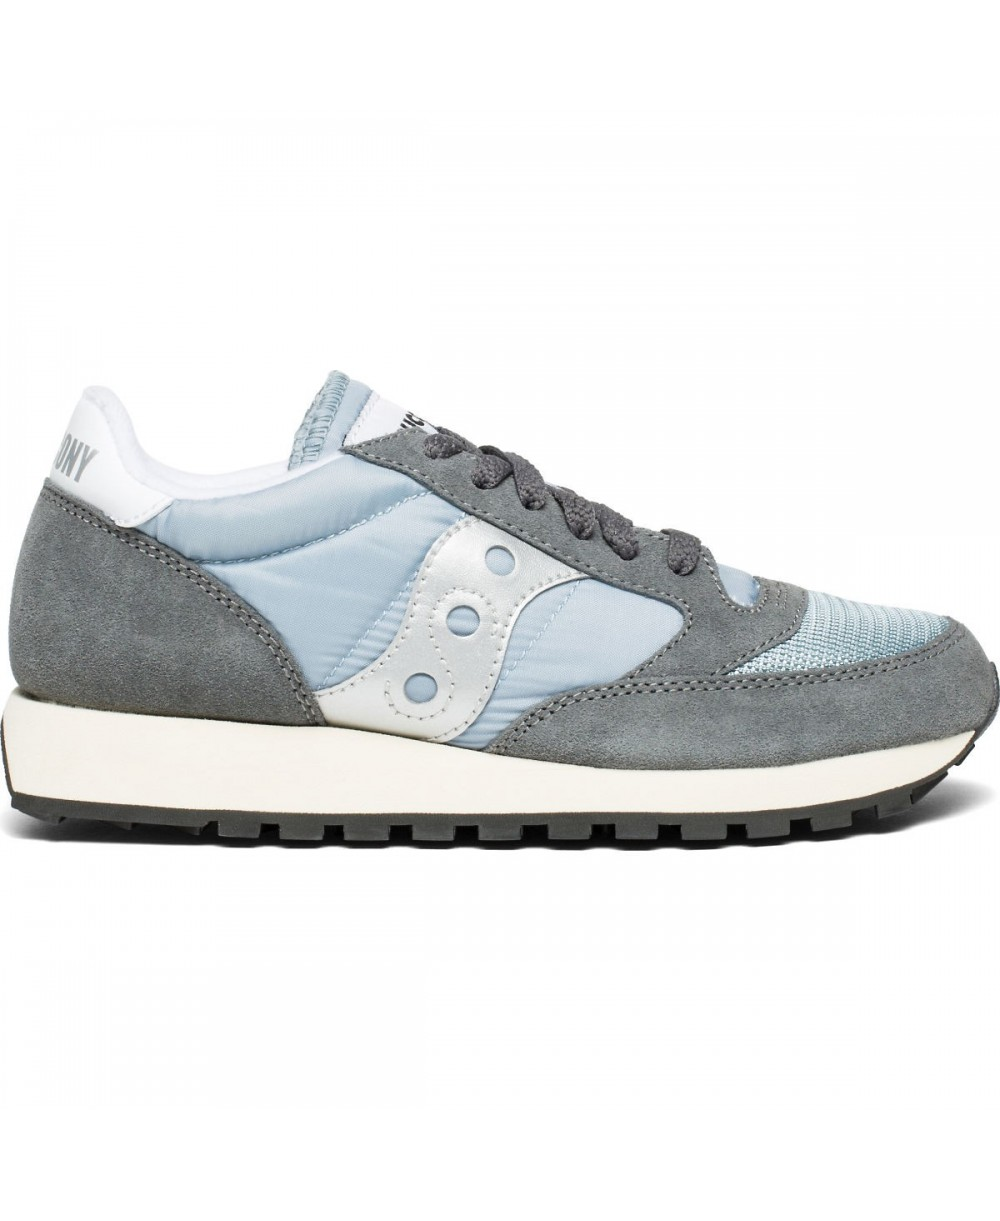 Saucony Jazz sneaker in black and white suede and nylon